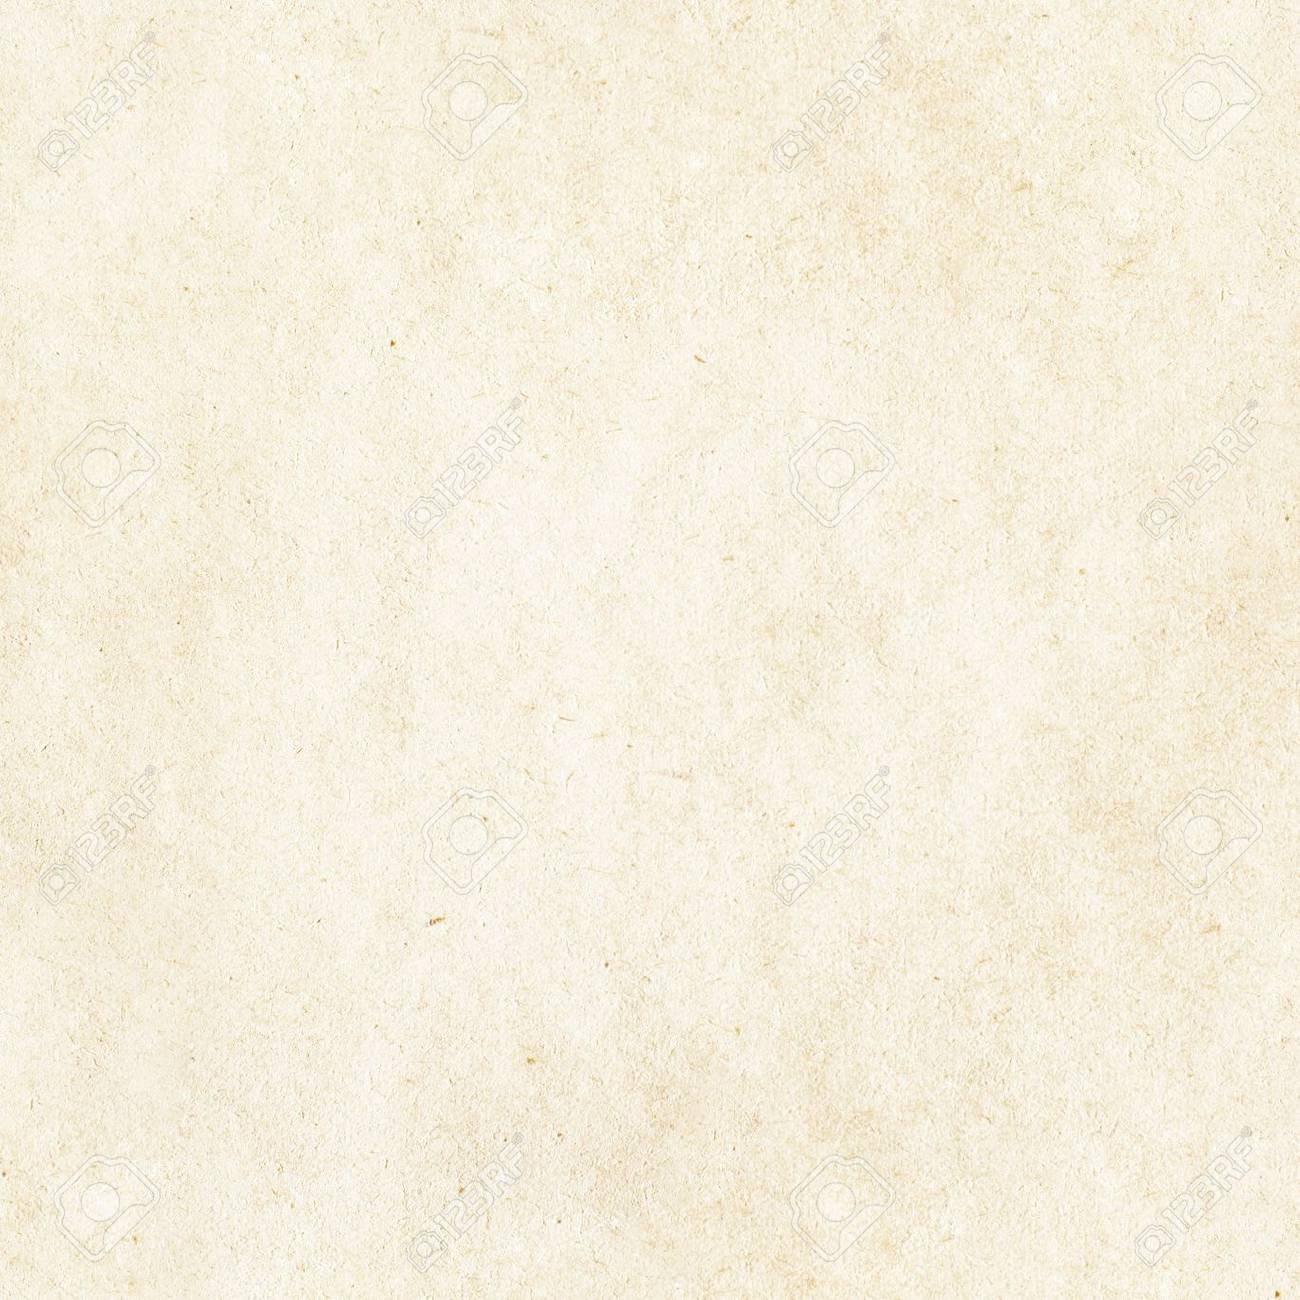 seamless old paper texture